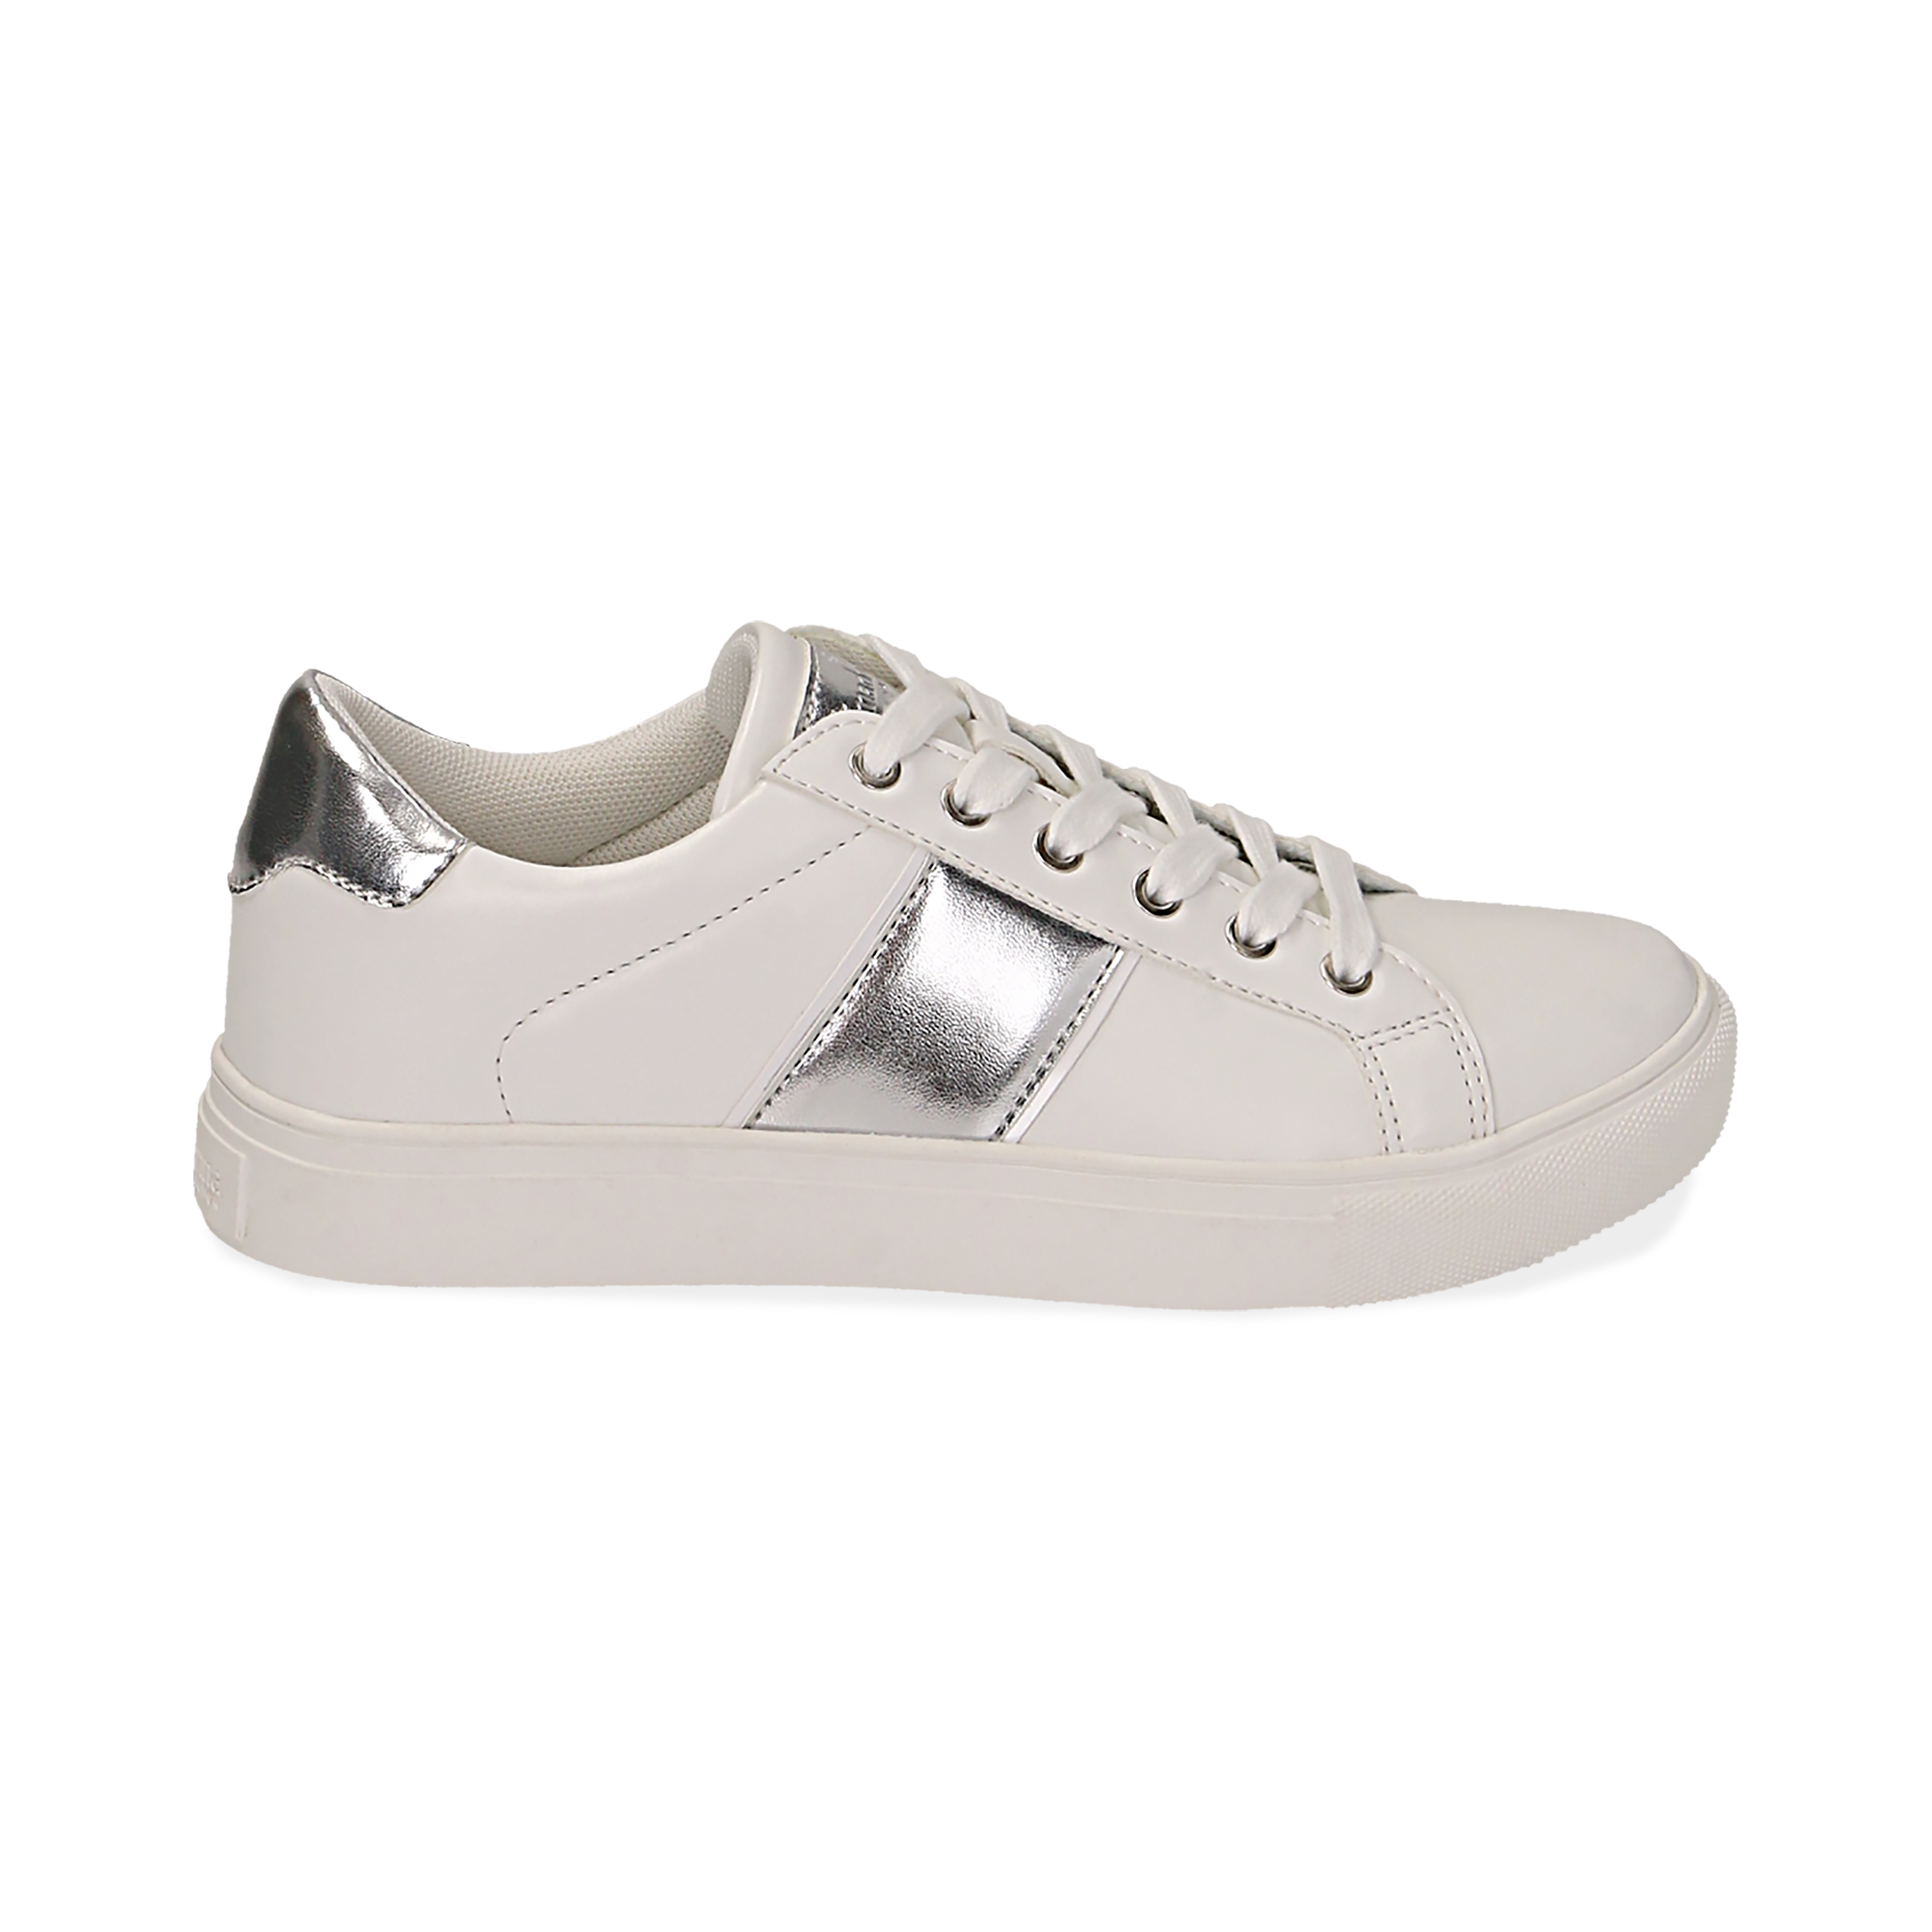 Sneakers de ecopiel en color blanco